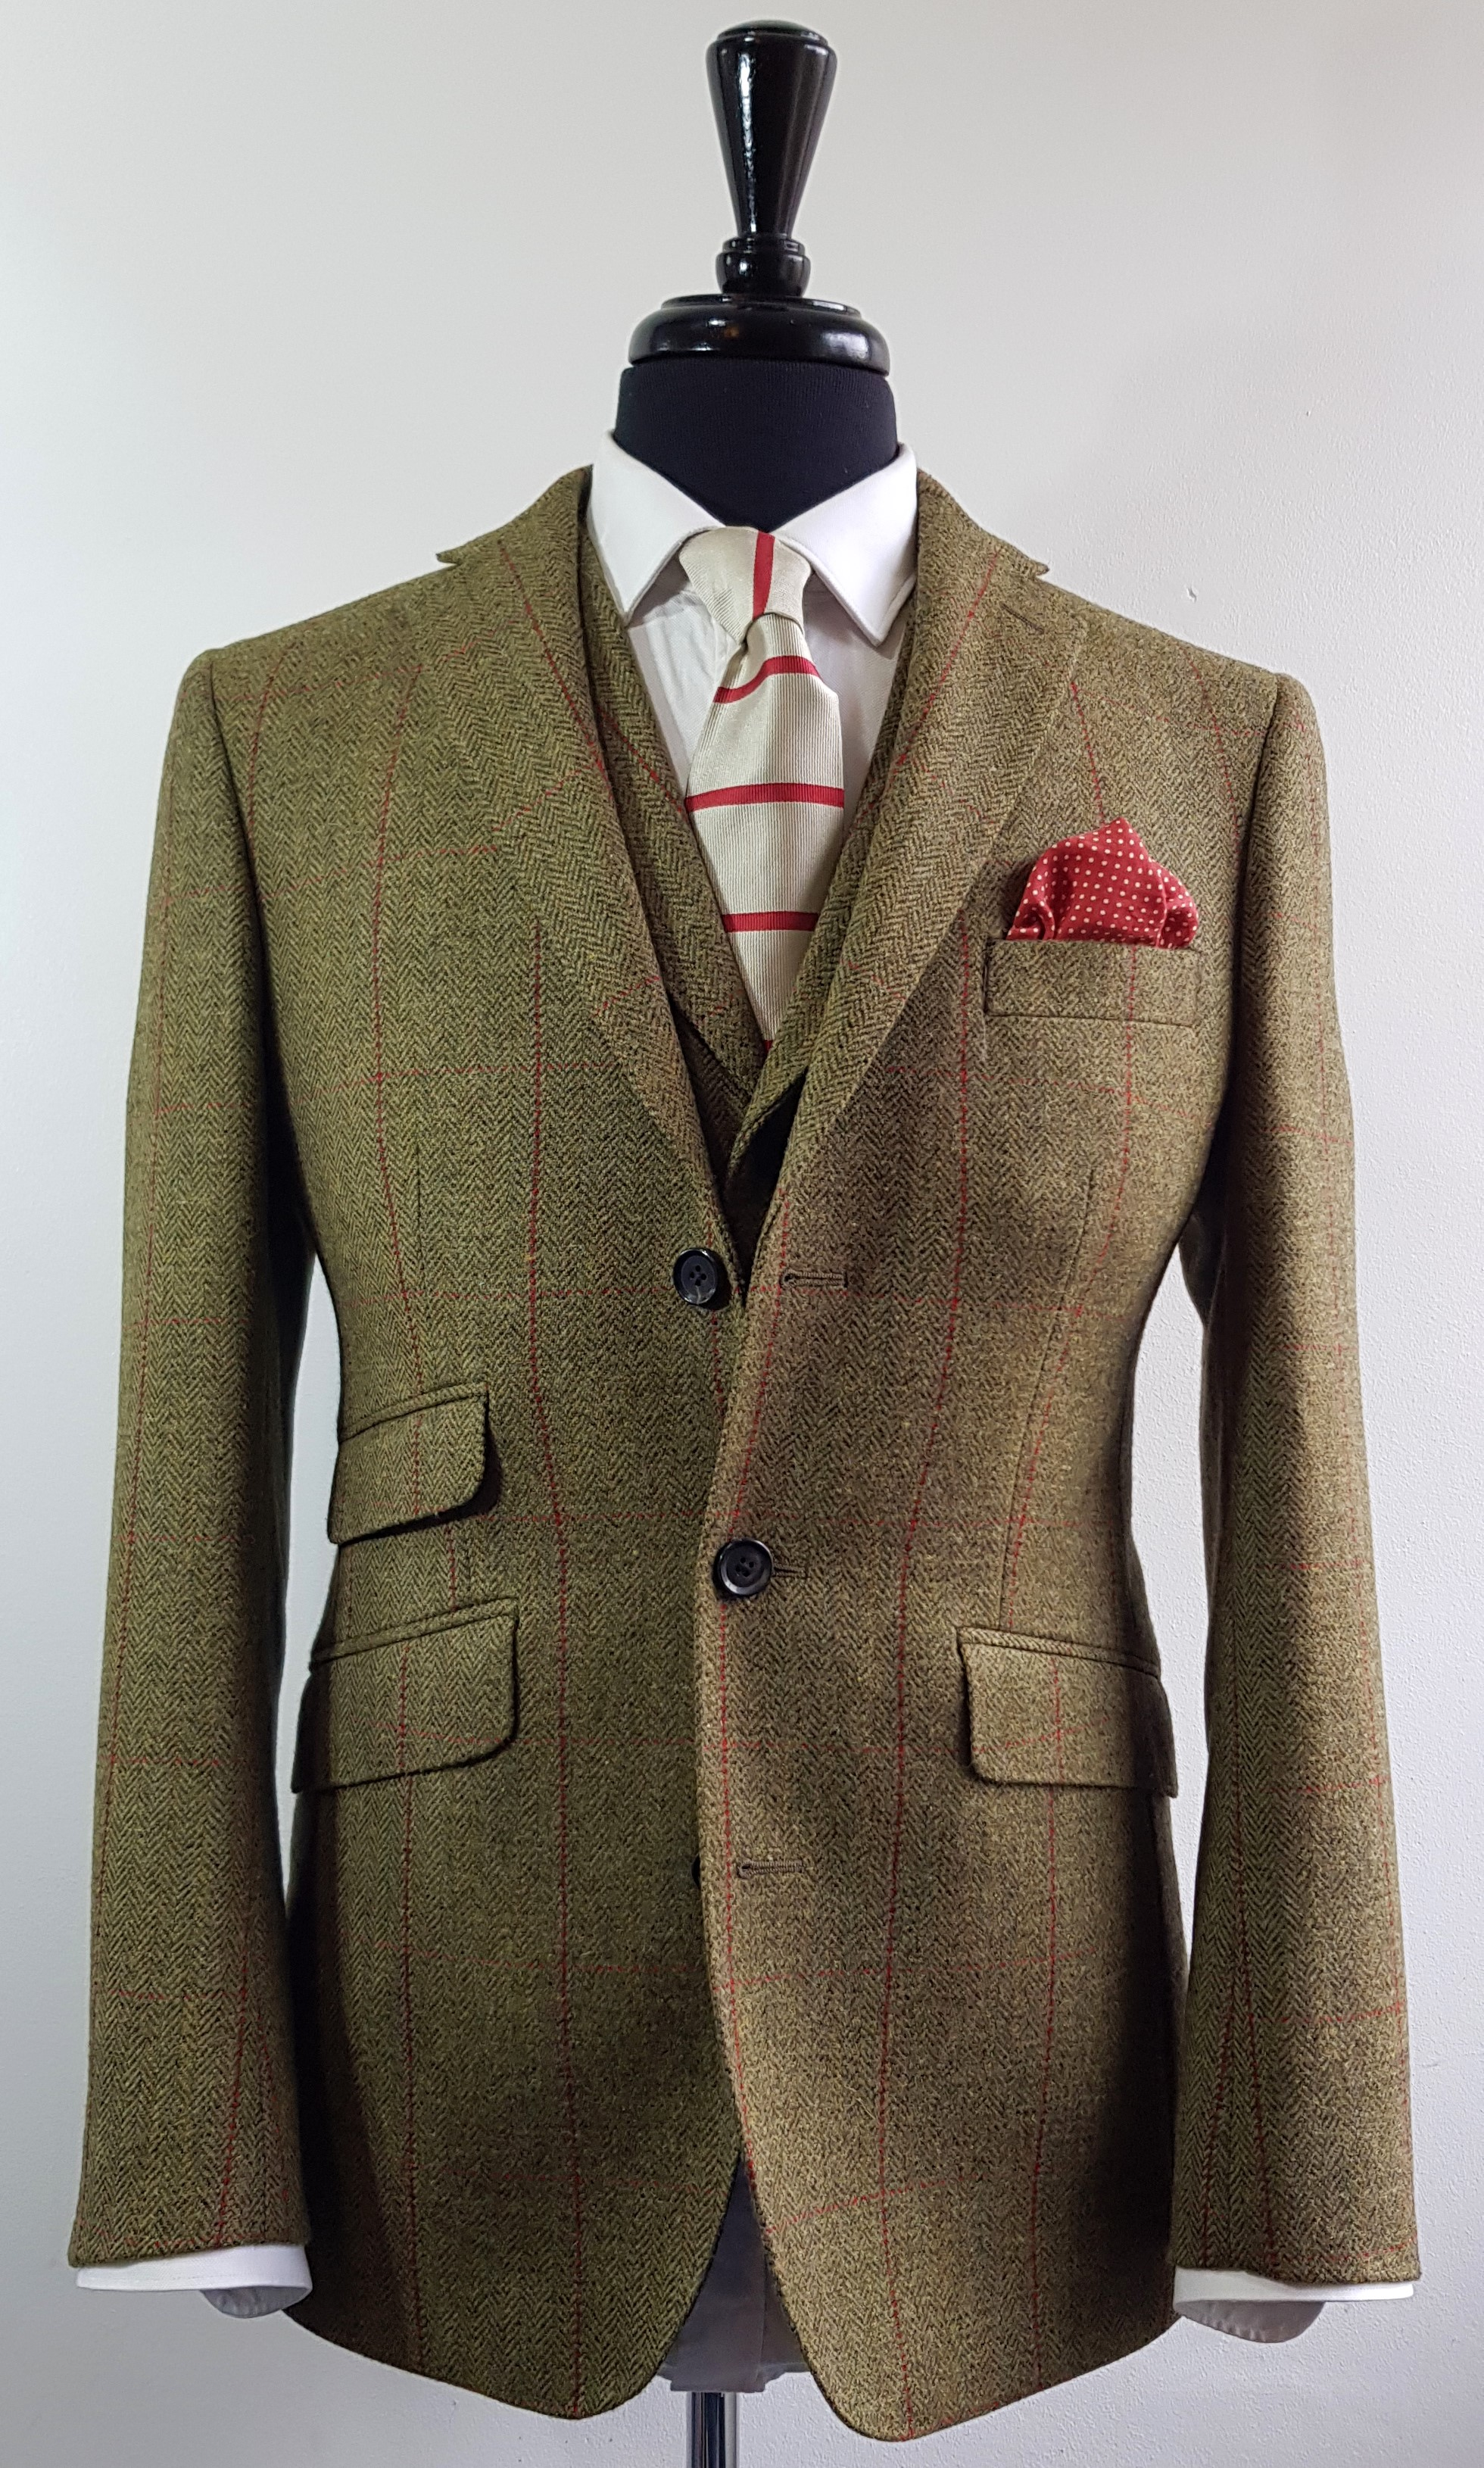 Tweed Jacket and Tweed Waistcoat (8).jpg